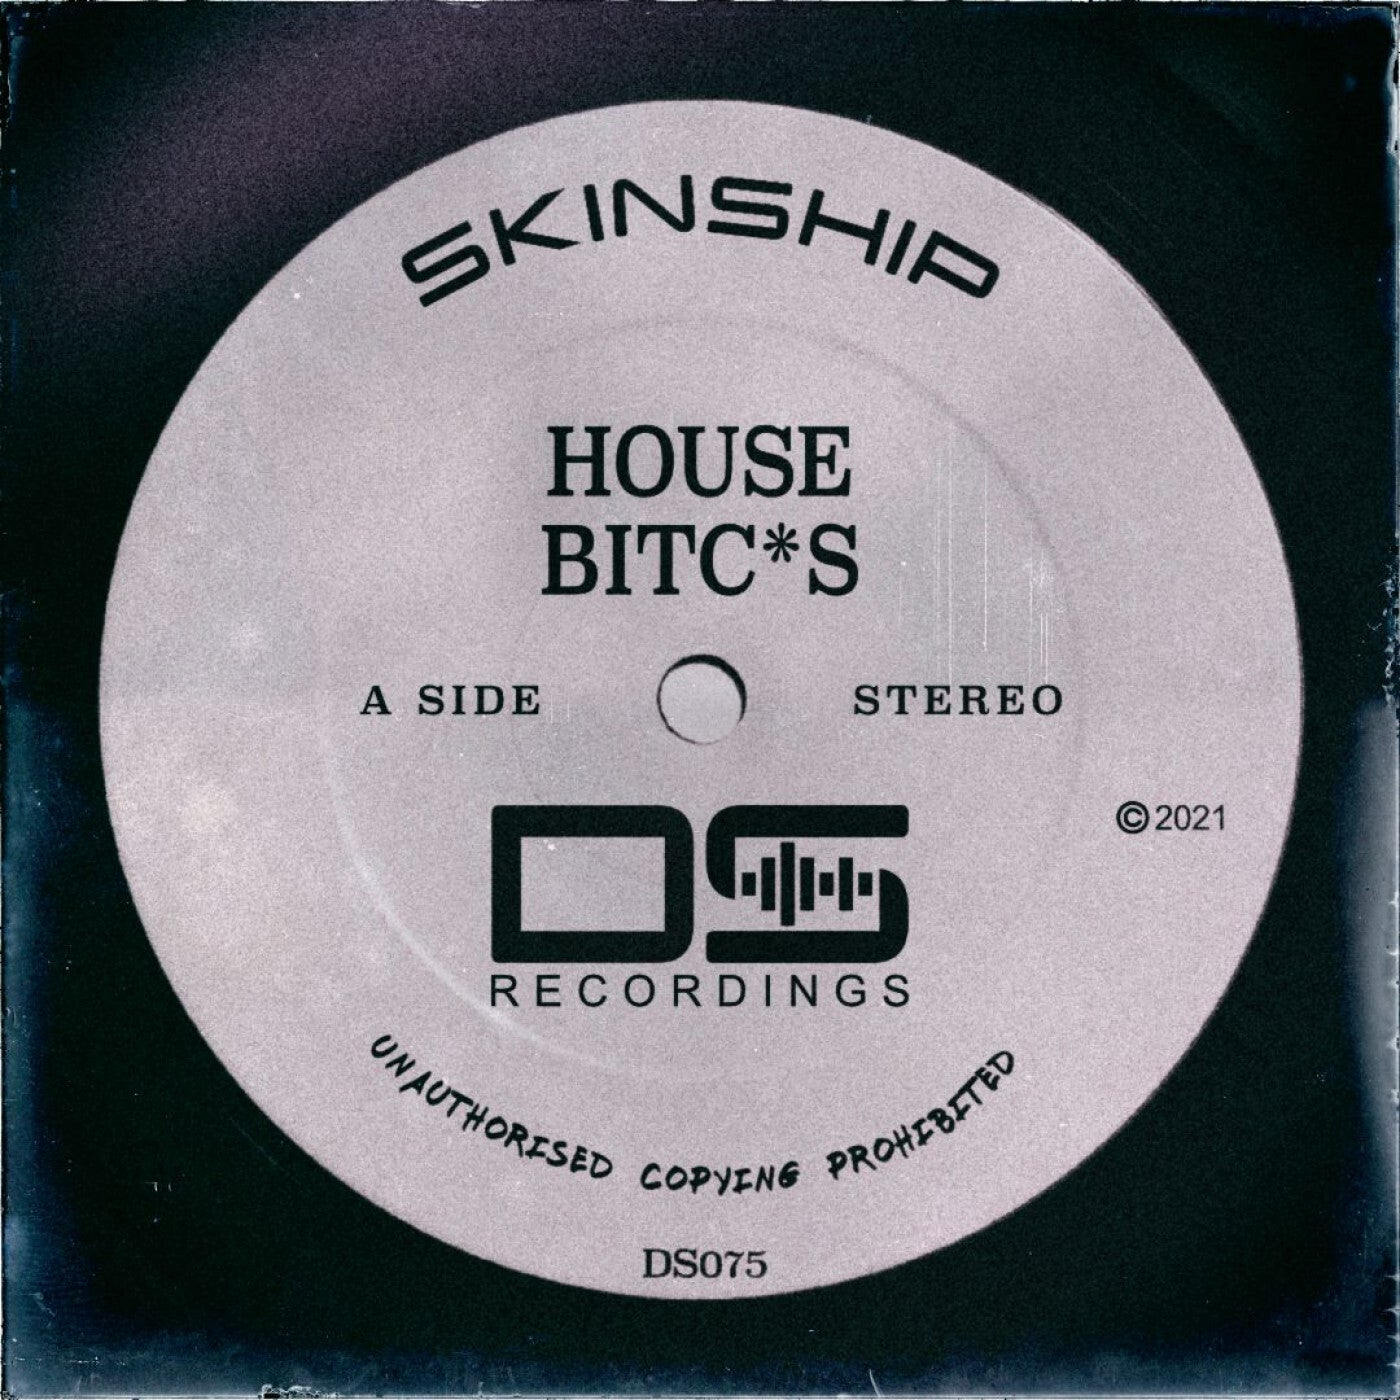 House Bitc*s (Original Mix)